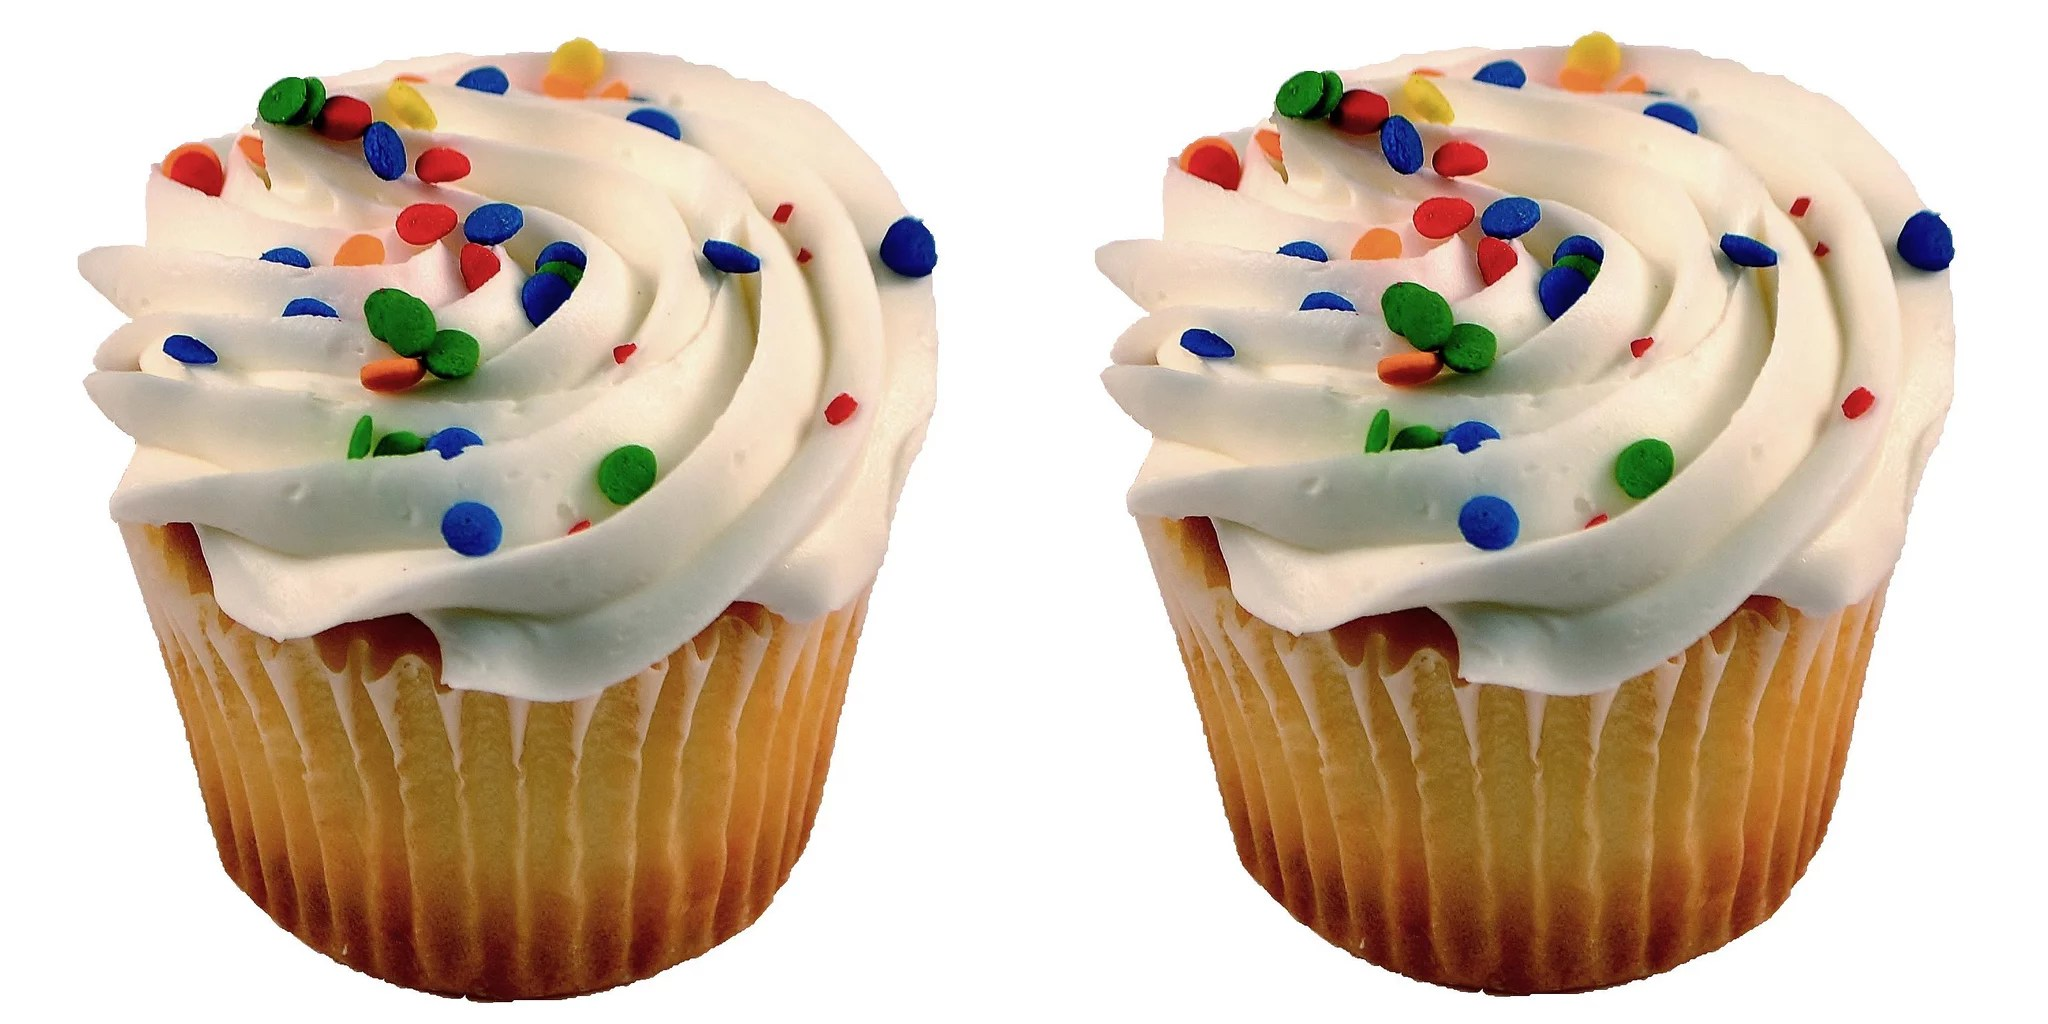 How To Get A Free Cupcake At Walmart